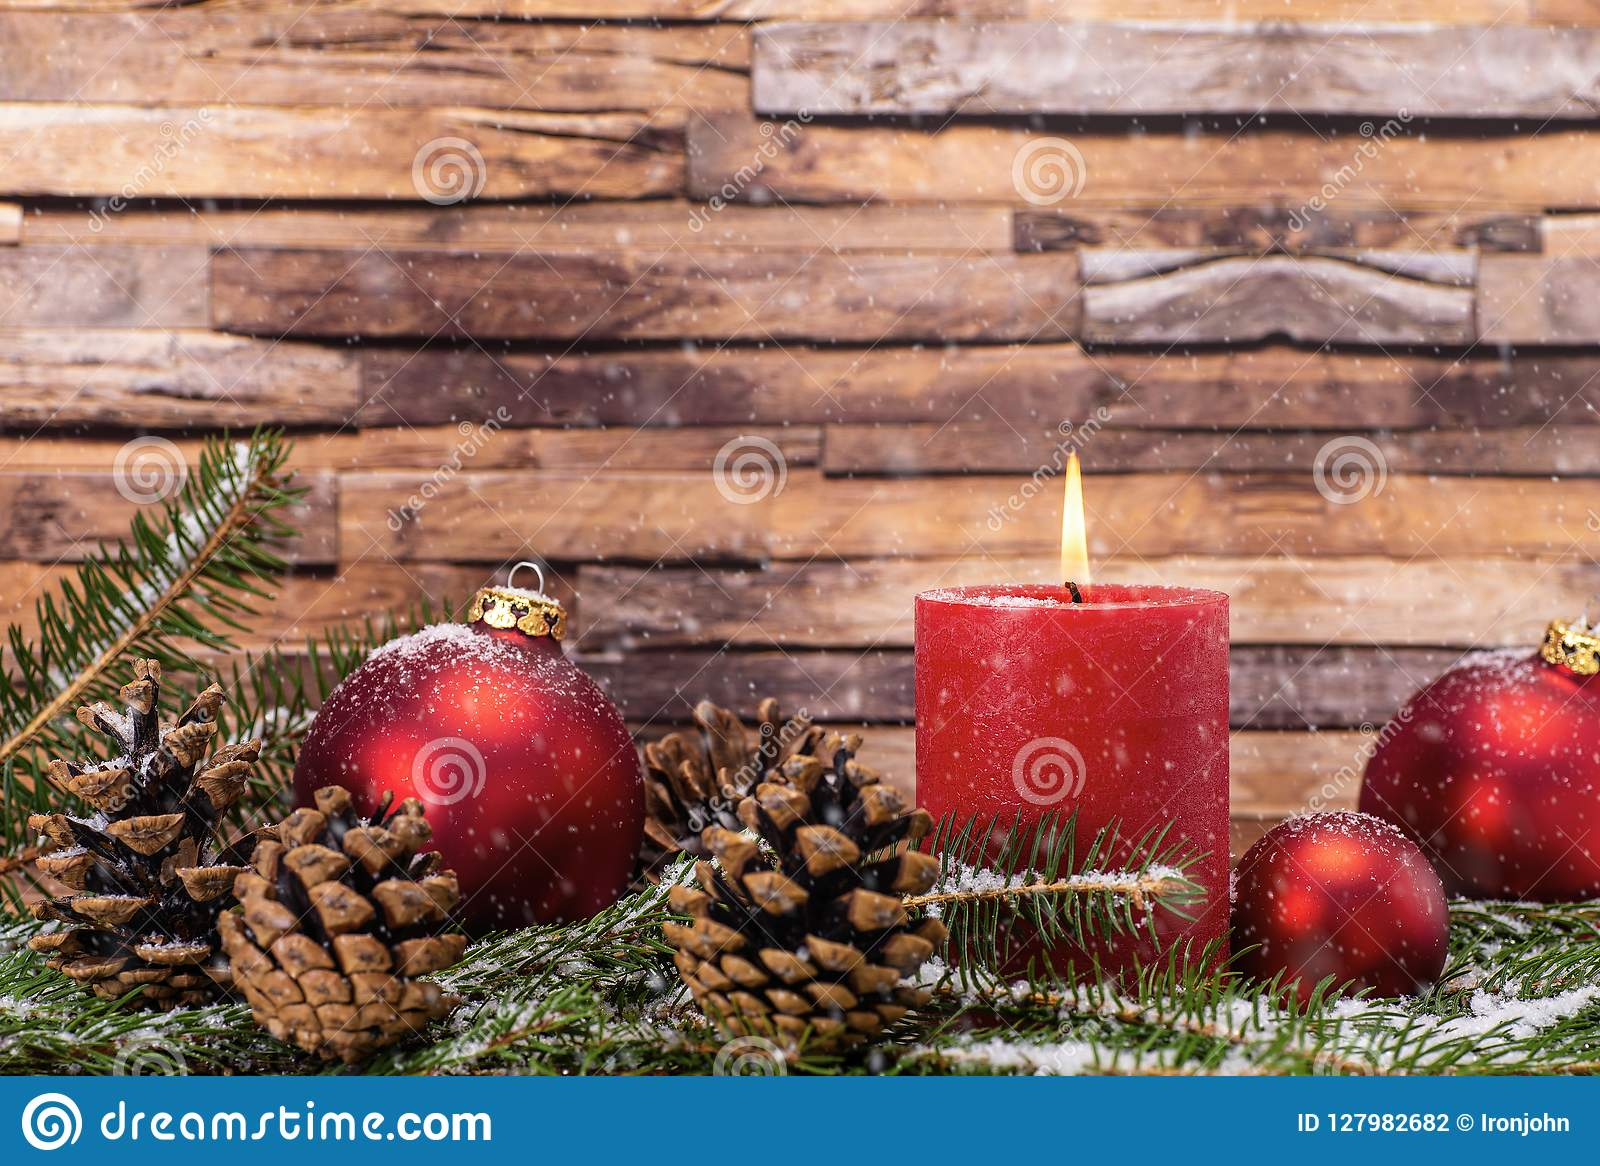 eef41a1e6bc1 Christmas Decoration With Candle And Snow Stock Photo - Image of ...